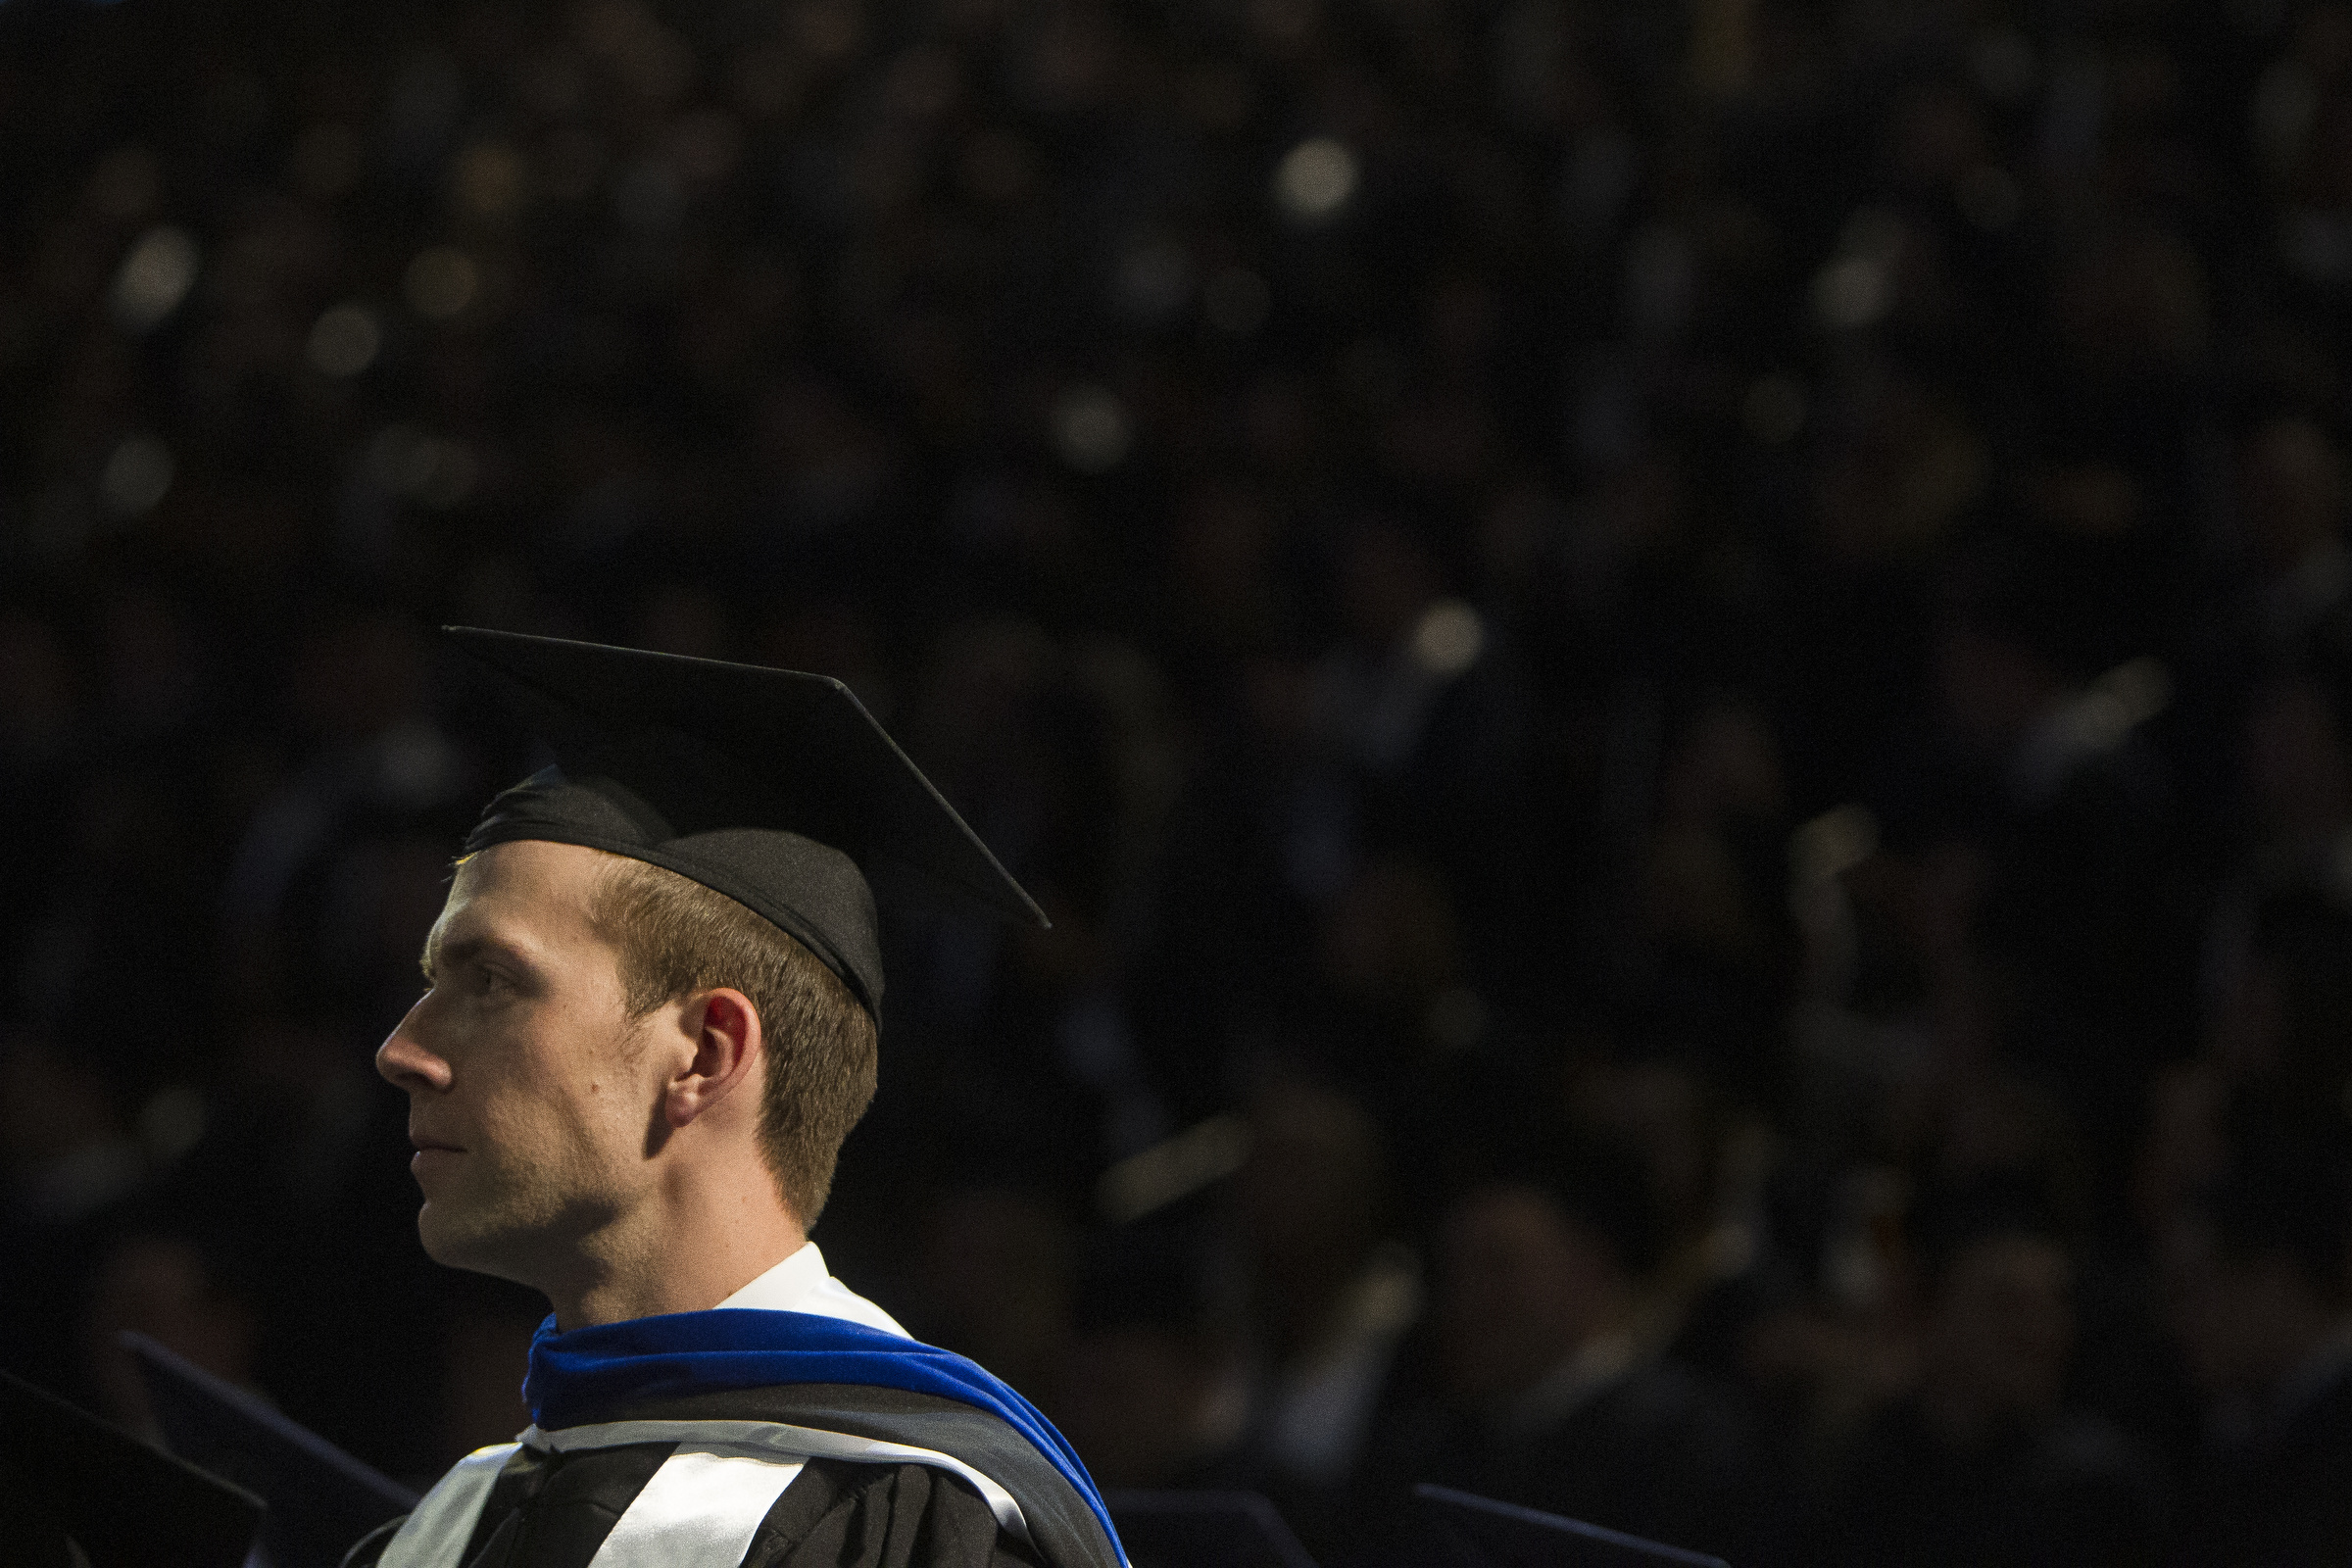 BYU graduate Jared Thomas, of Cottonwood Heights, watches the proceedings during Brigham Young University's commencement ceremony in the Marriott Center on Thursday, April 26, 2018, in Provo. BYU is awarding nearly 6,300 degrees to graduates this week.